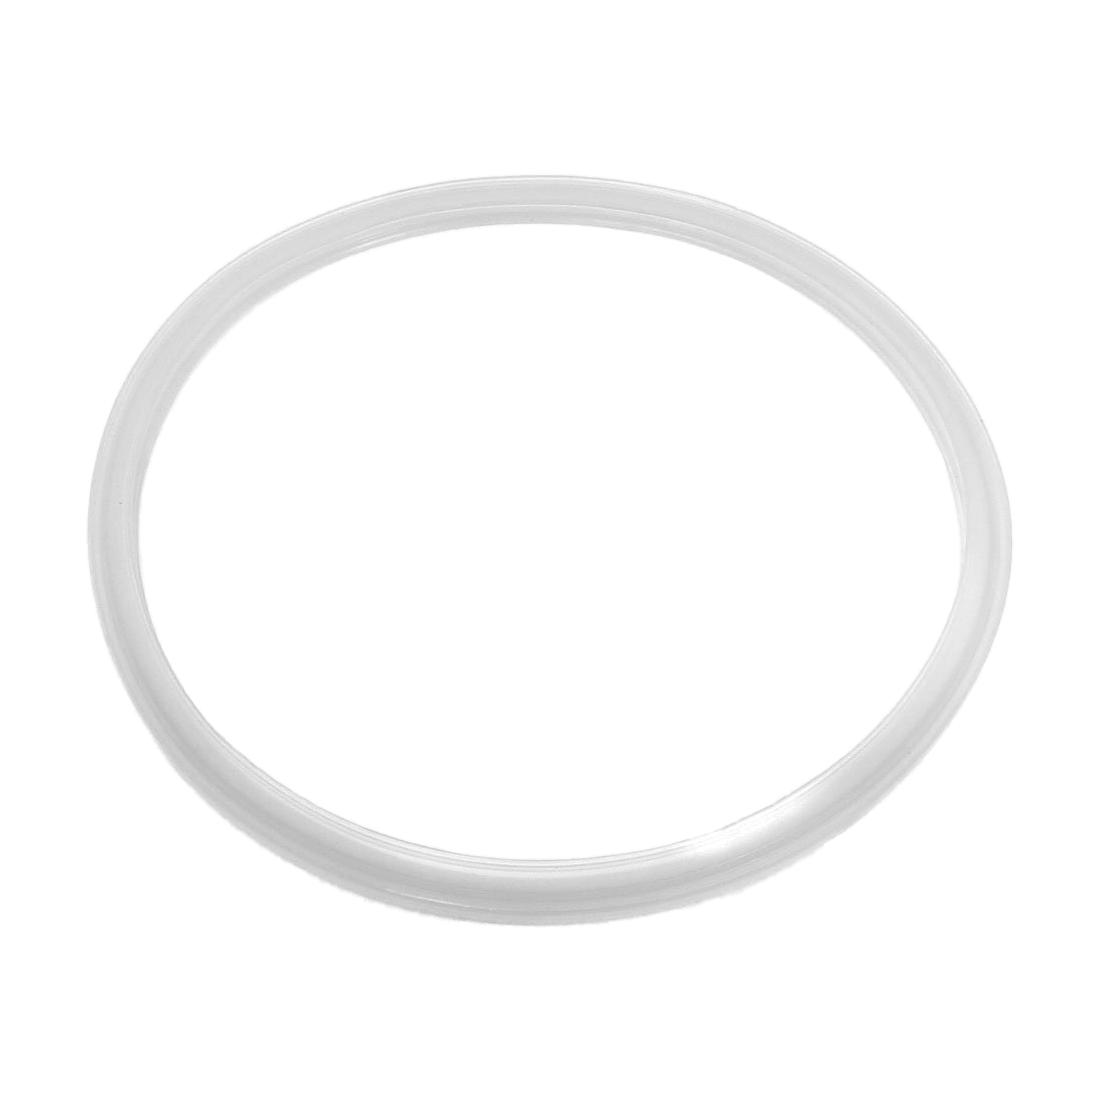 18cm Silicone Rubber Sealing Ring for Electric Pressure Cooker Replacements Parts Silica Gel Gasket Accessories18cm Silicone Rubber Sealing Ring for Electric Pressure Cooker Replacements Parts Silica Gel Gasket Accessories